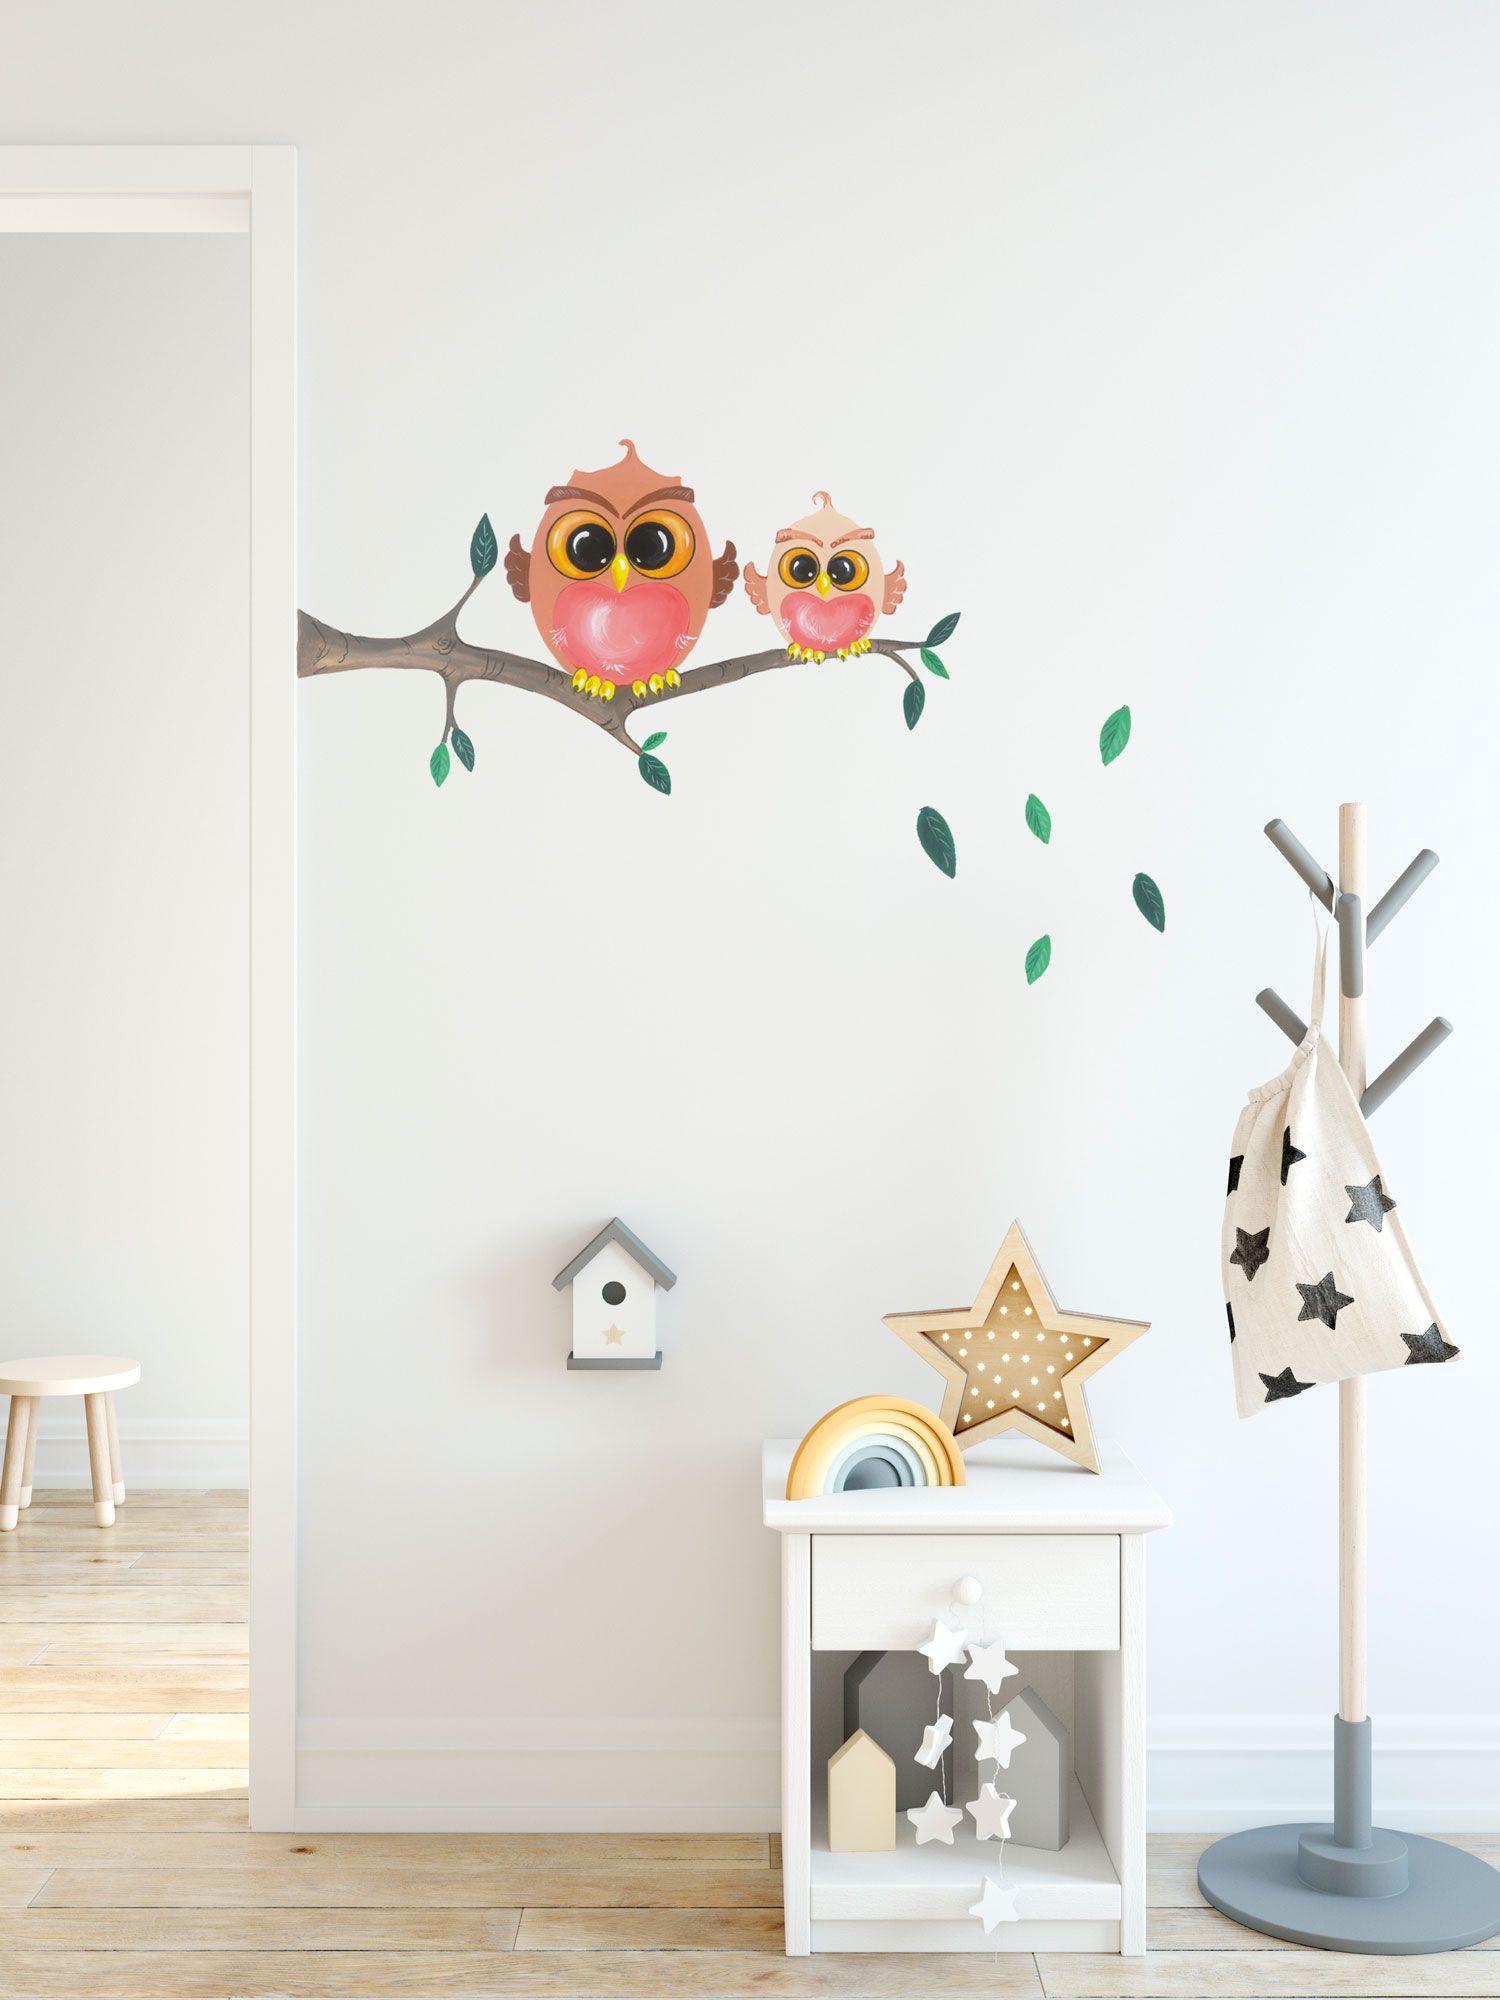 Removable Wall Decal 2 CUTE OWLS ON THE BRANCH